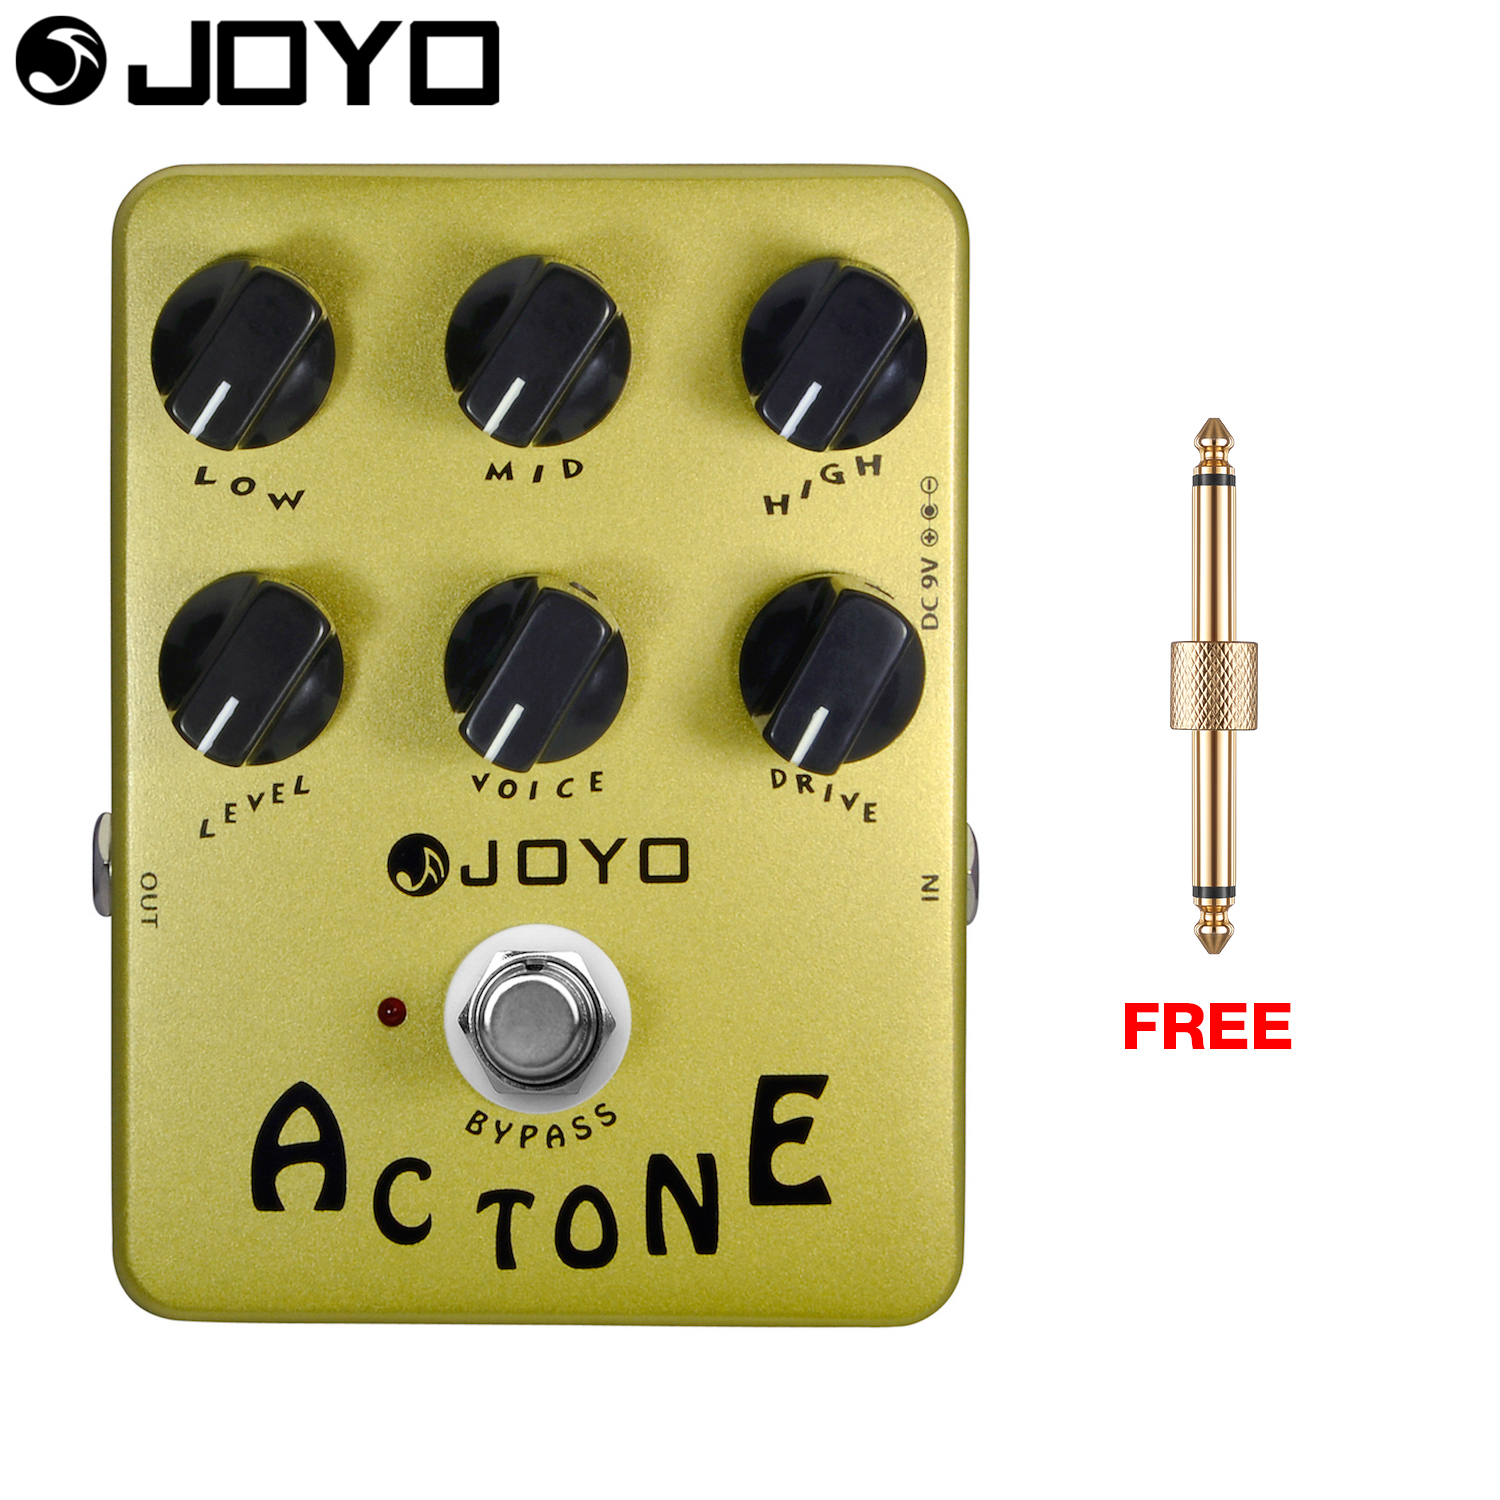 JOYO Ac Tone Electric Guitar Effect Pedal Amp Simulator Vox Style British Class A True Bypass JF-13 with Free Connector aroma adr 3 dumbler amp simulator guitar effect pedal mini single pedals with true bypass aluminium alloy guitar accessories